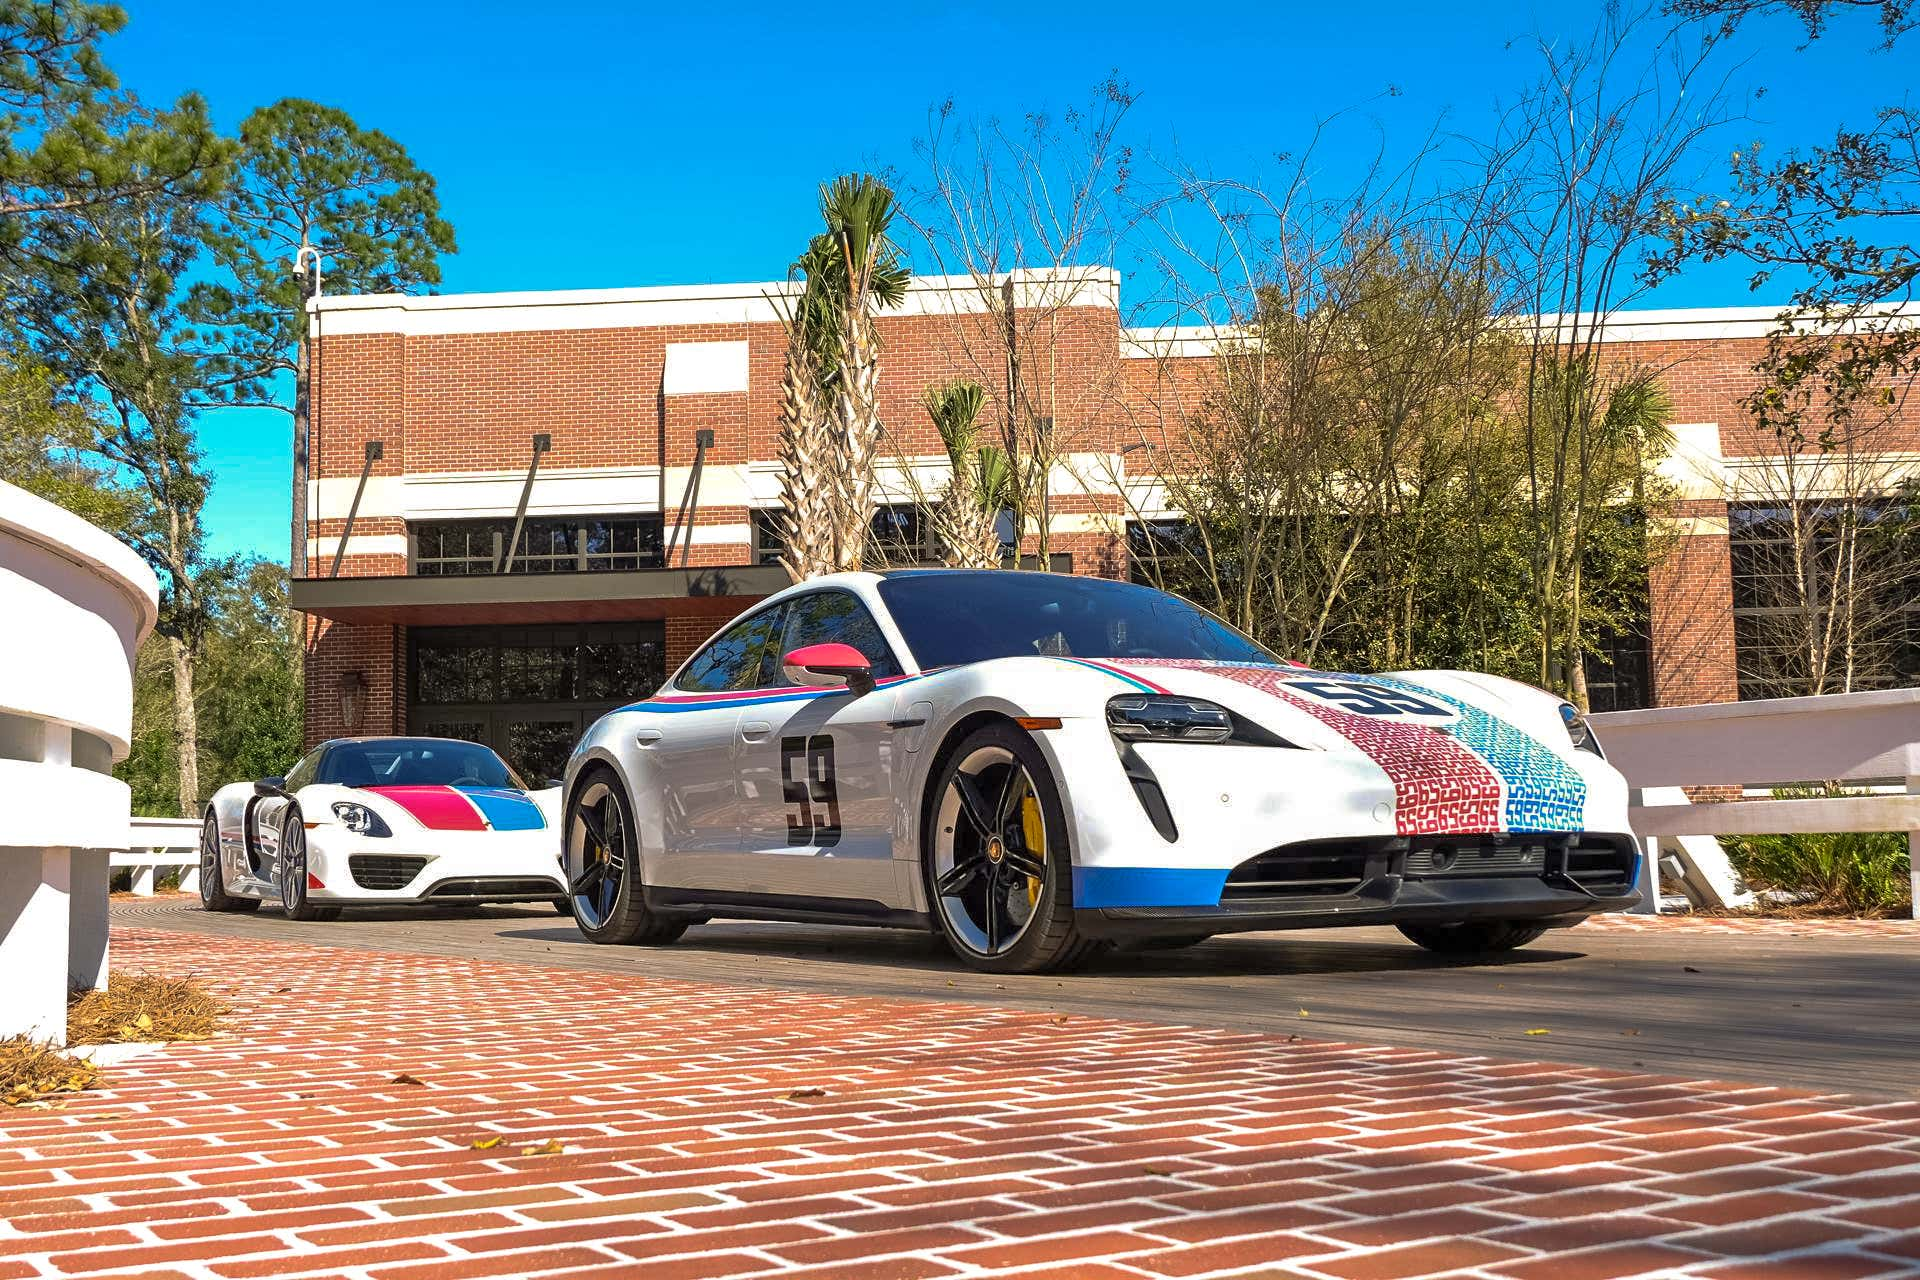 A Porsche Taycan and 918 Spyder.